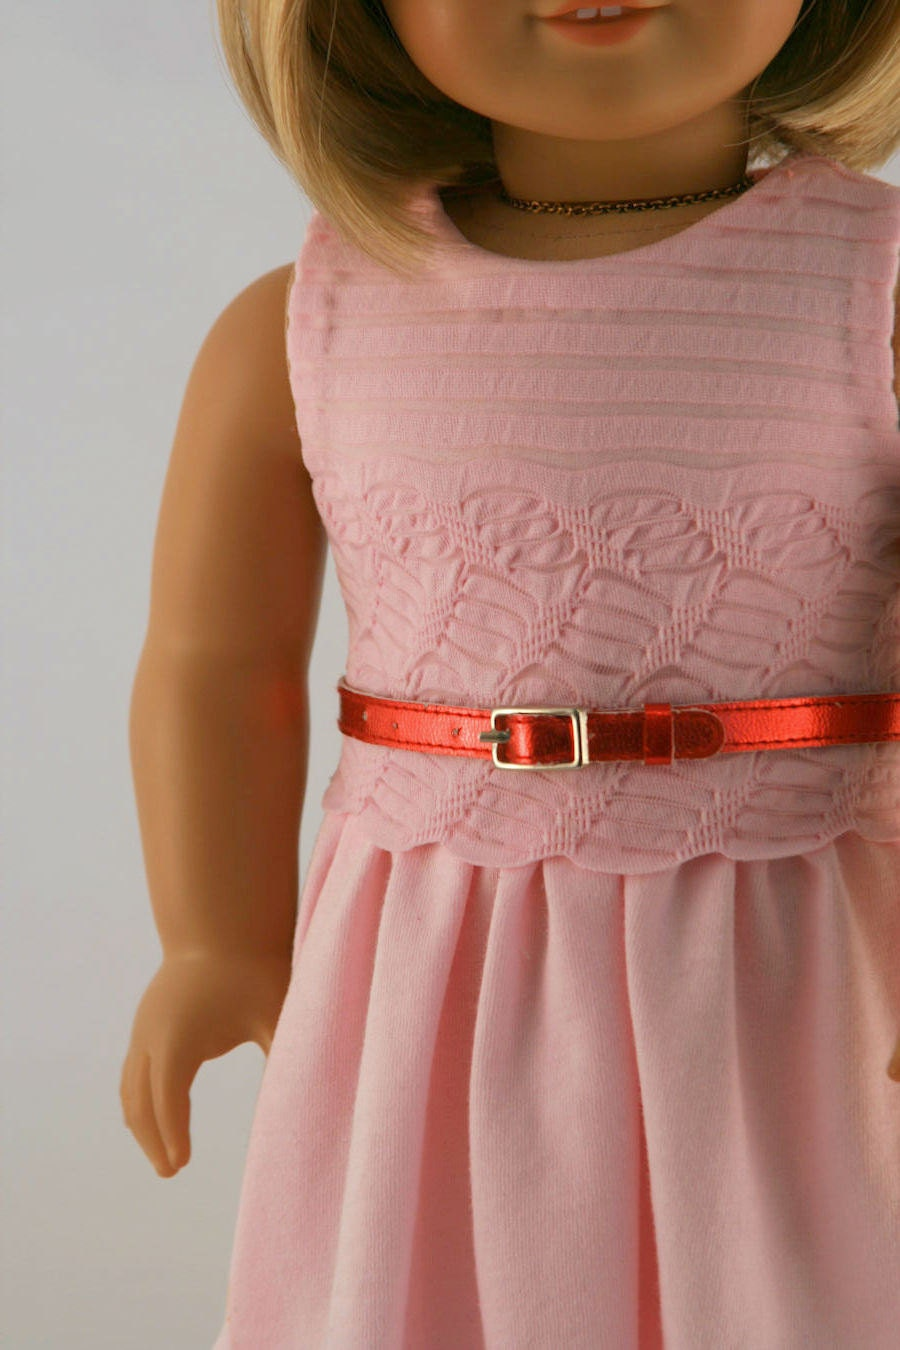 American Girl Doll Clothes - Pink Knit Dress with Red Metallic Belt